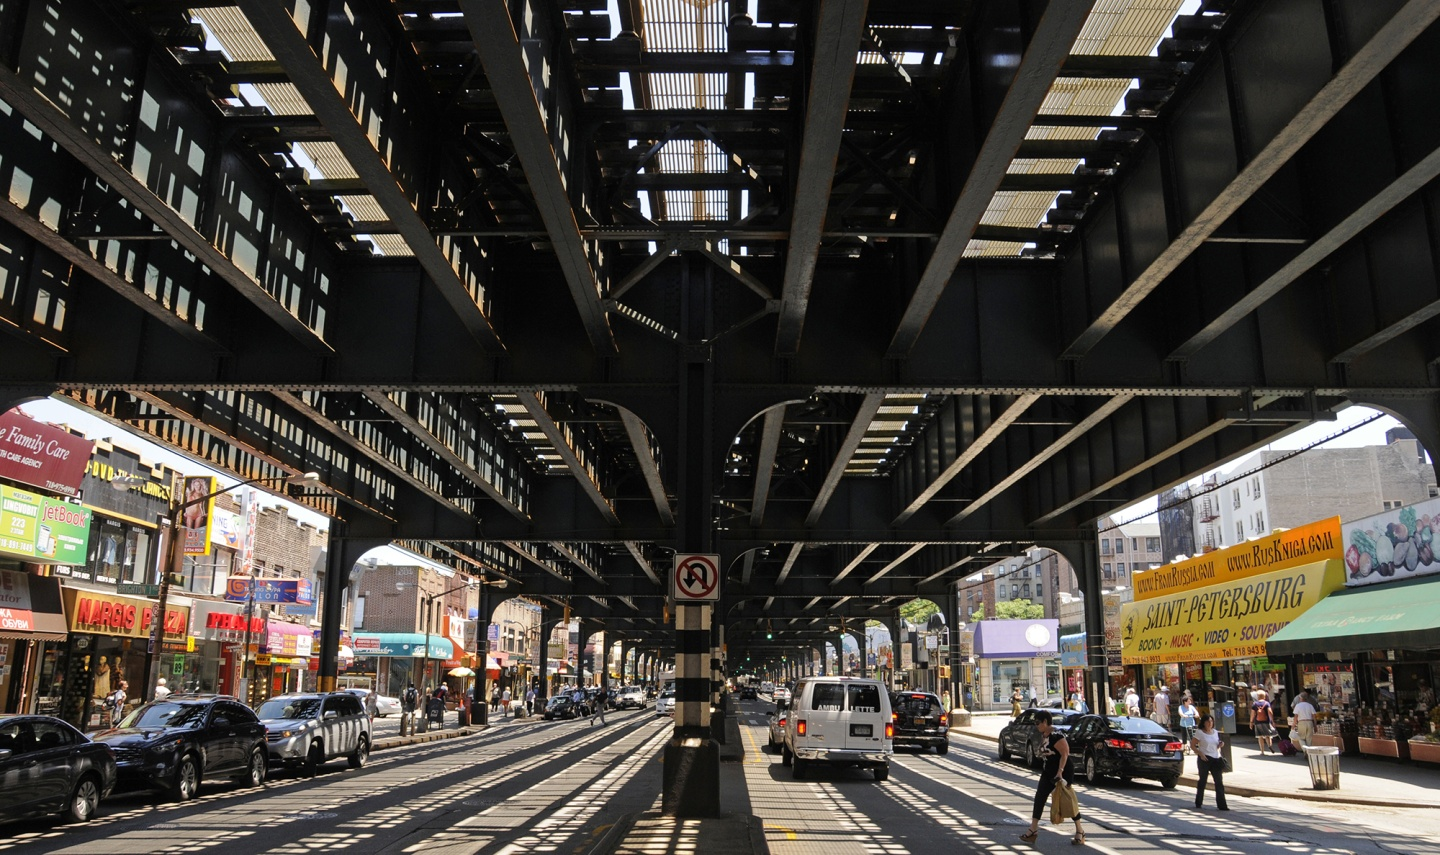 The elevated subway, a hallmark of Brighton Beach, seen here in 2011.